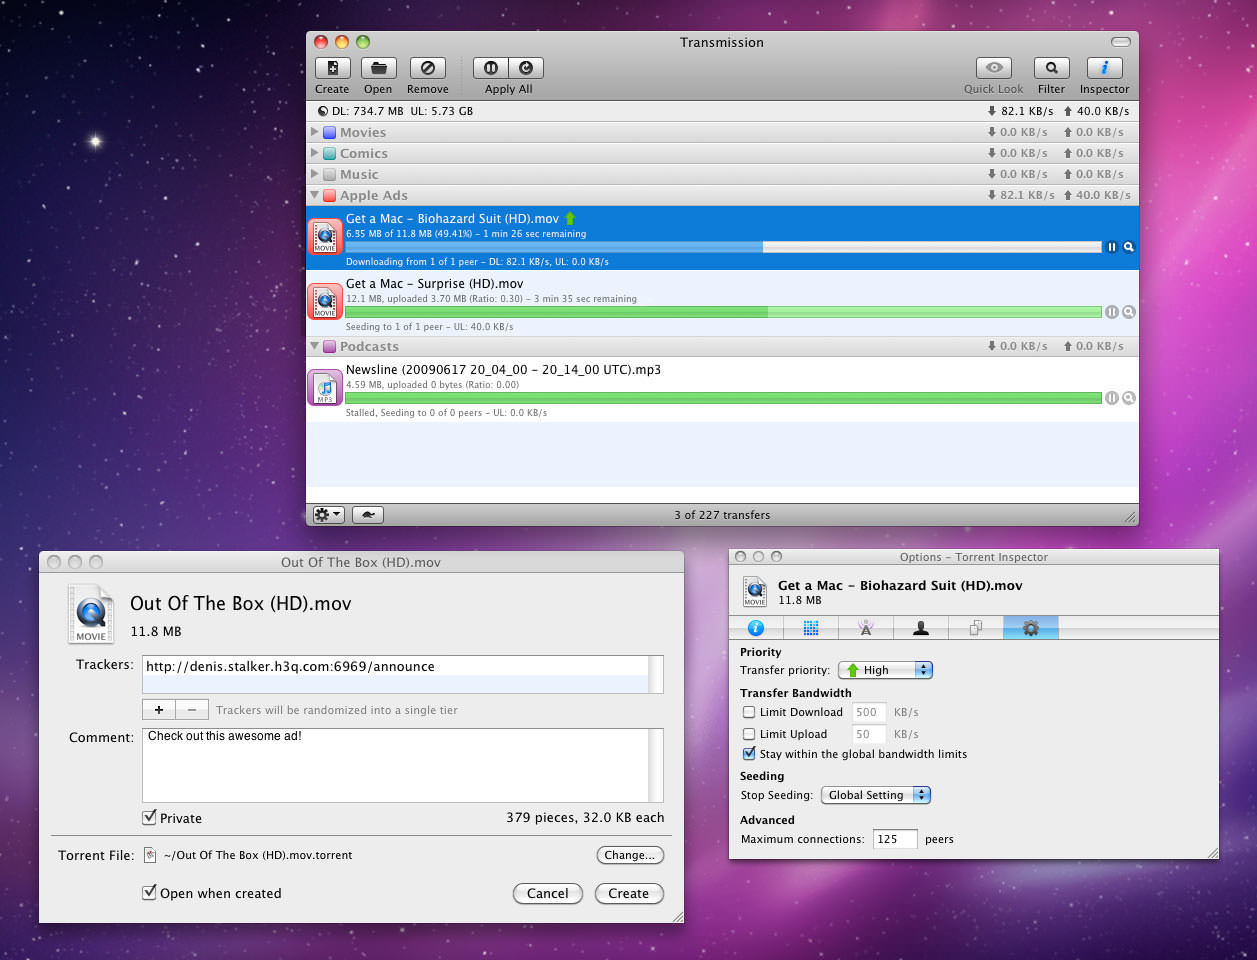 Free BitTorrent Client For Mac OS X: Vuze